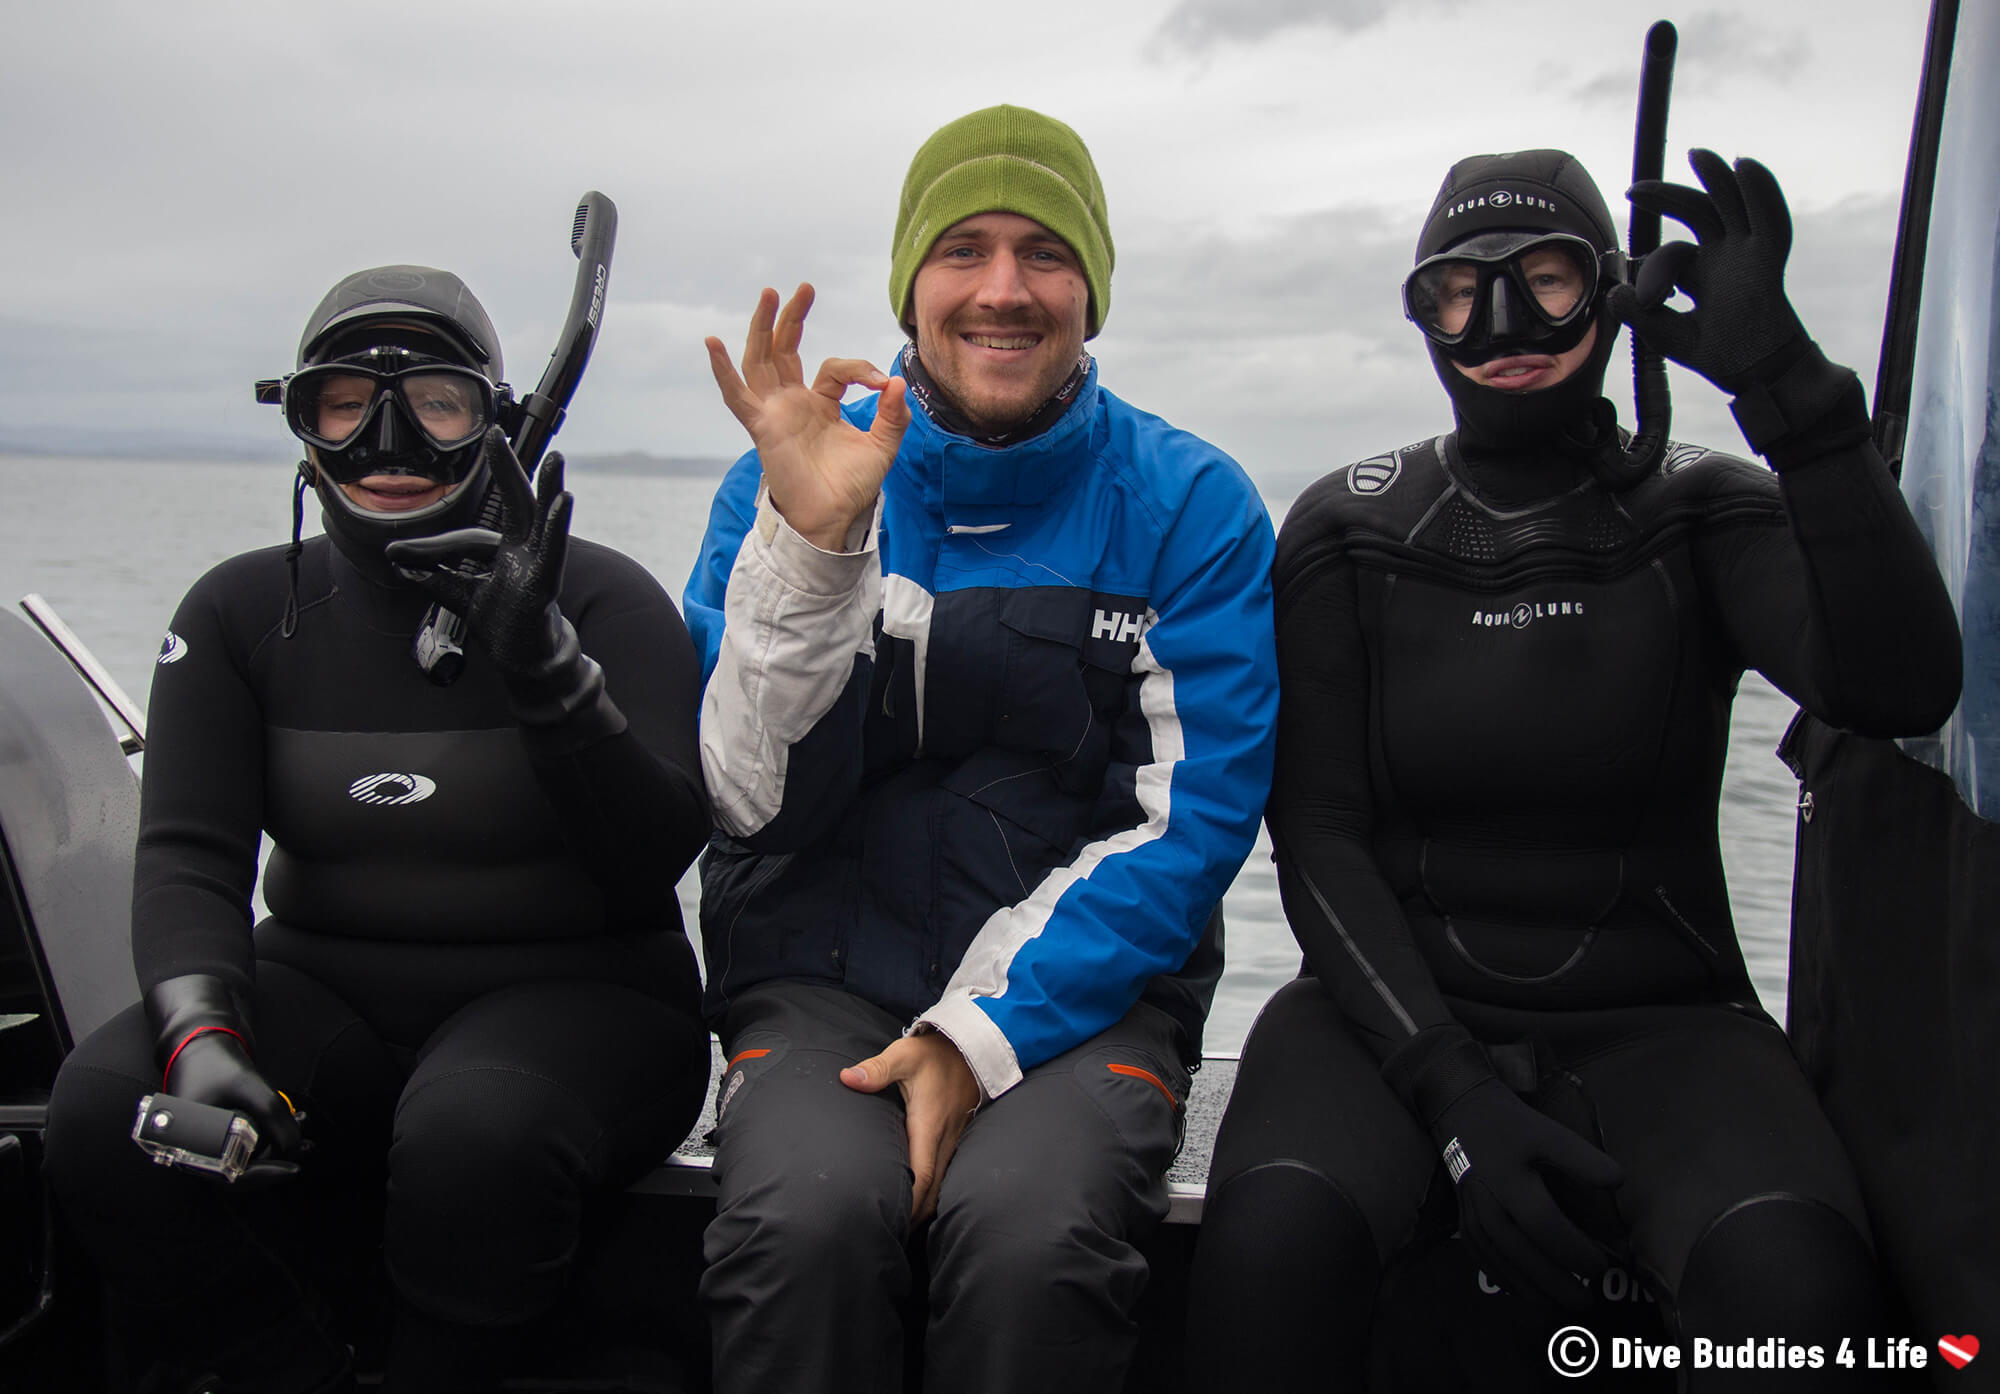 Joey And Two Snorkellers Getting Ready To Hit The Water And See Basking Sharks In Scotland, UK